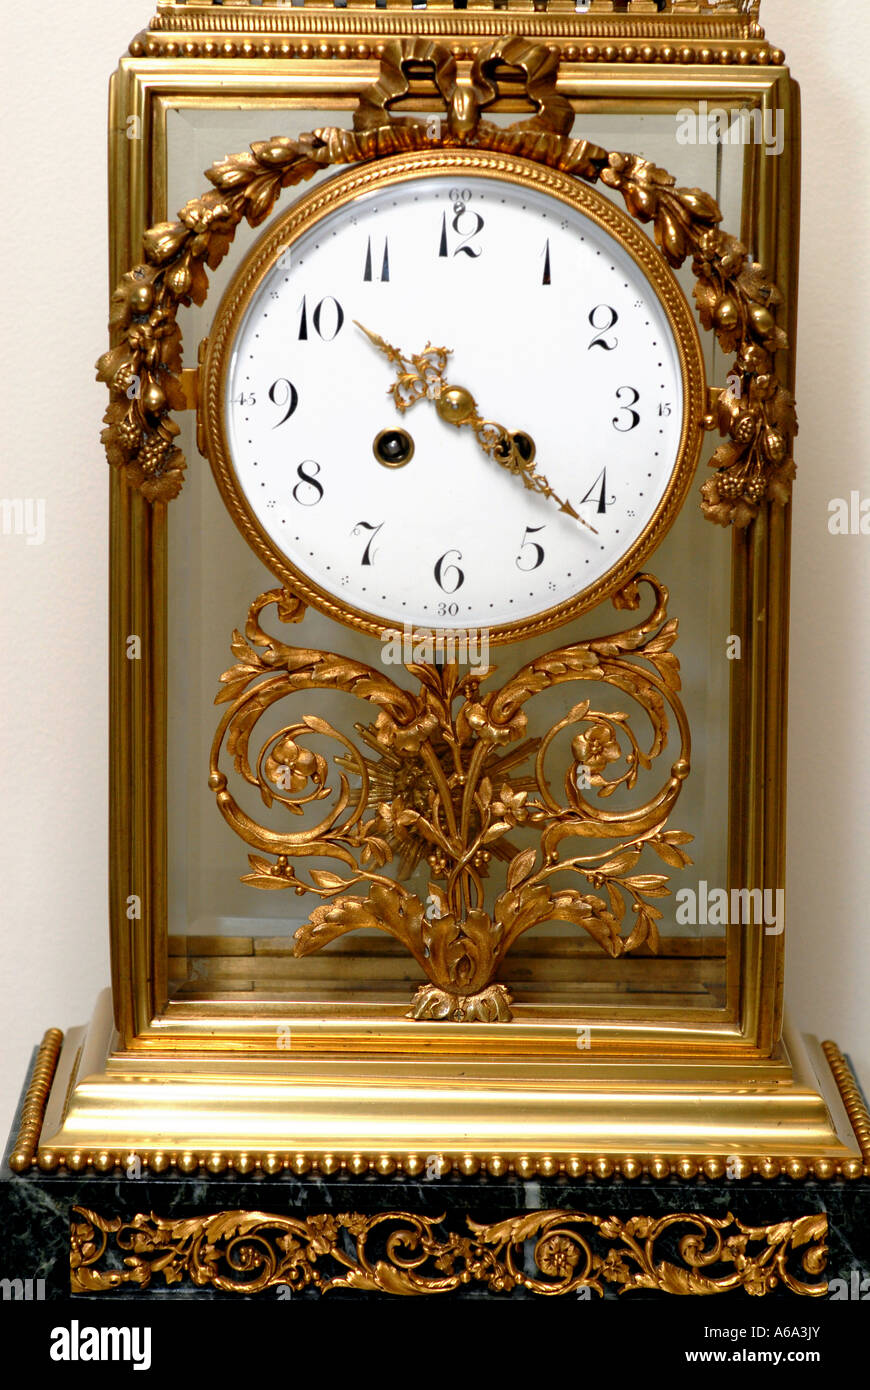 1890 s Antique French Clock - Stock Image